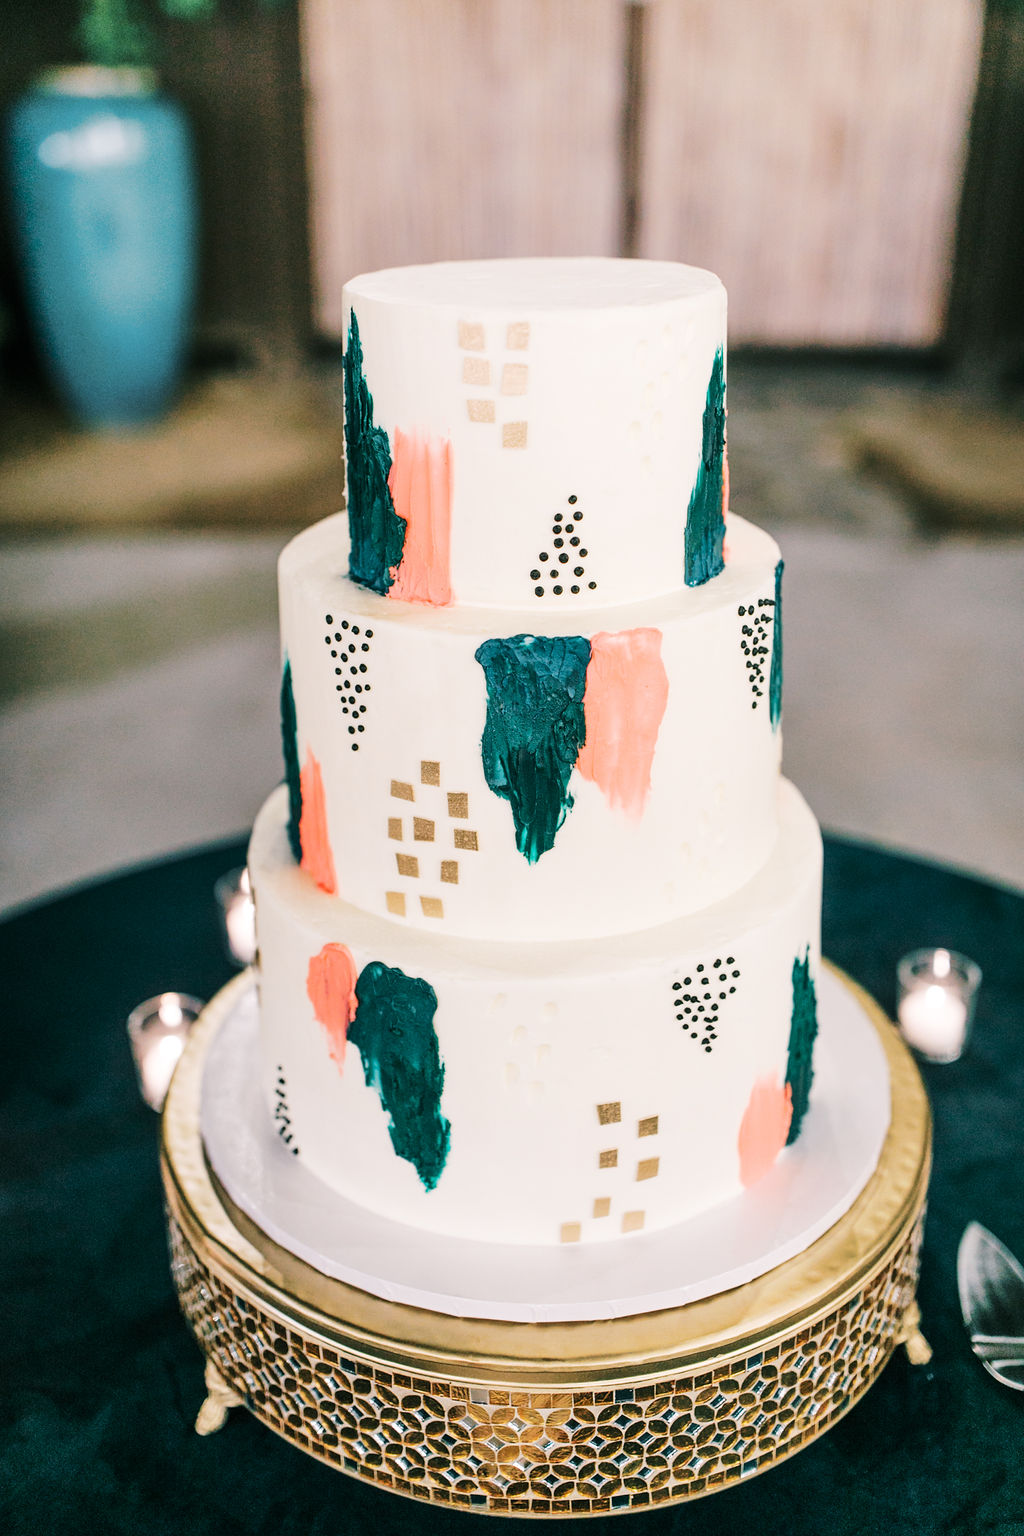 meagan robert wedding cake modern patterns